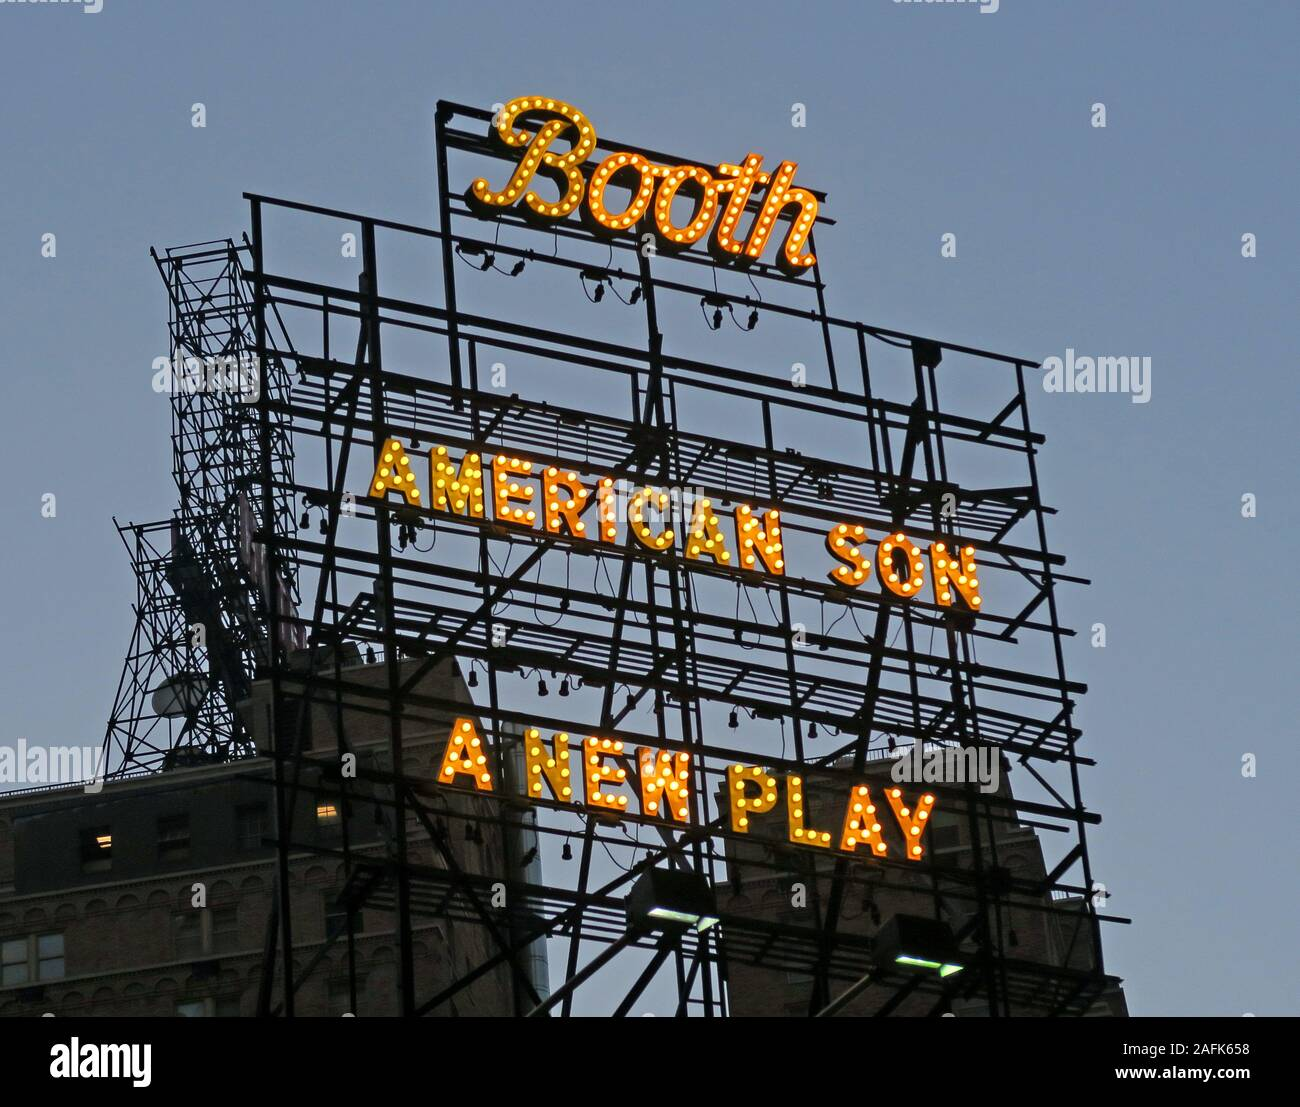 Dieses Stockfoto: Neon-Schild oben auf dem Theater in Gelb, Stand, American Son, A New Broadway Play, New York City, NY, USA - 2AFK65